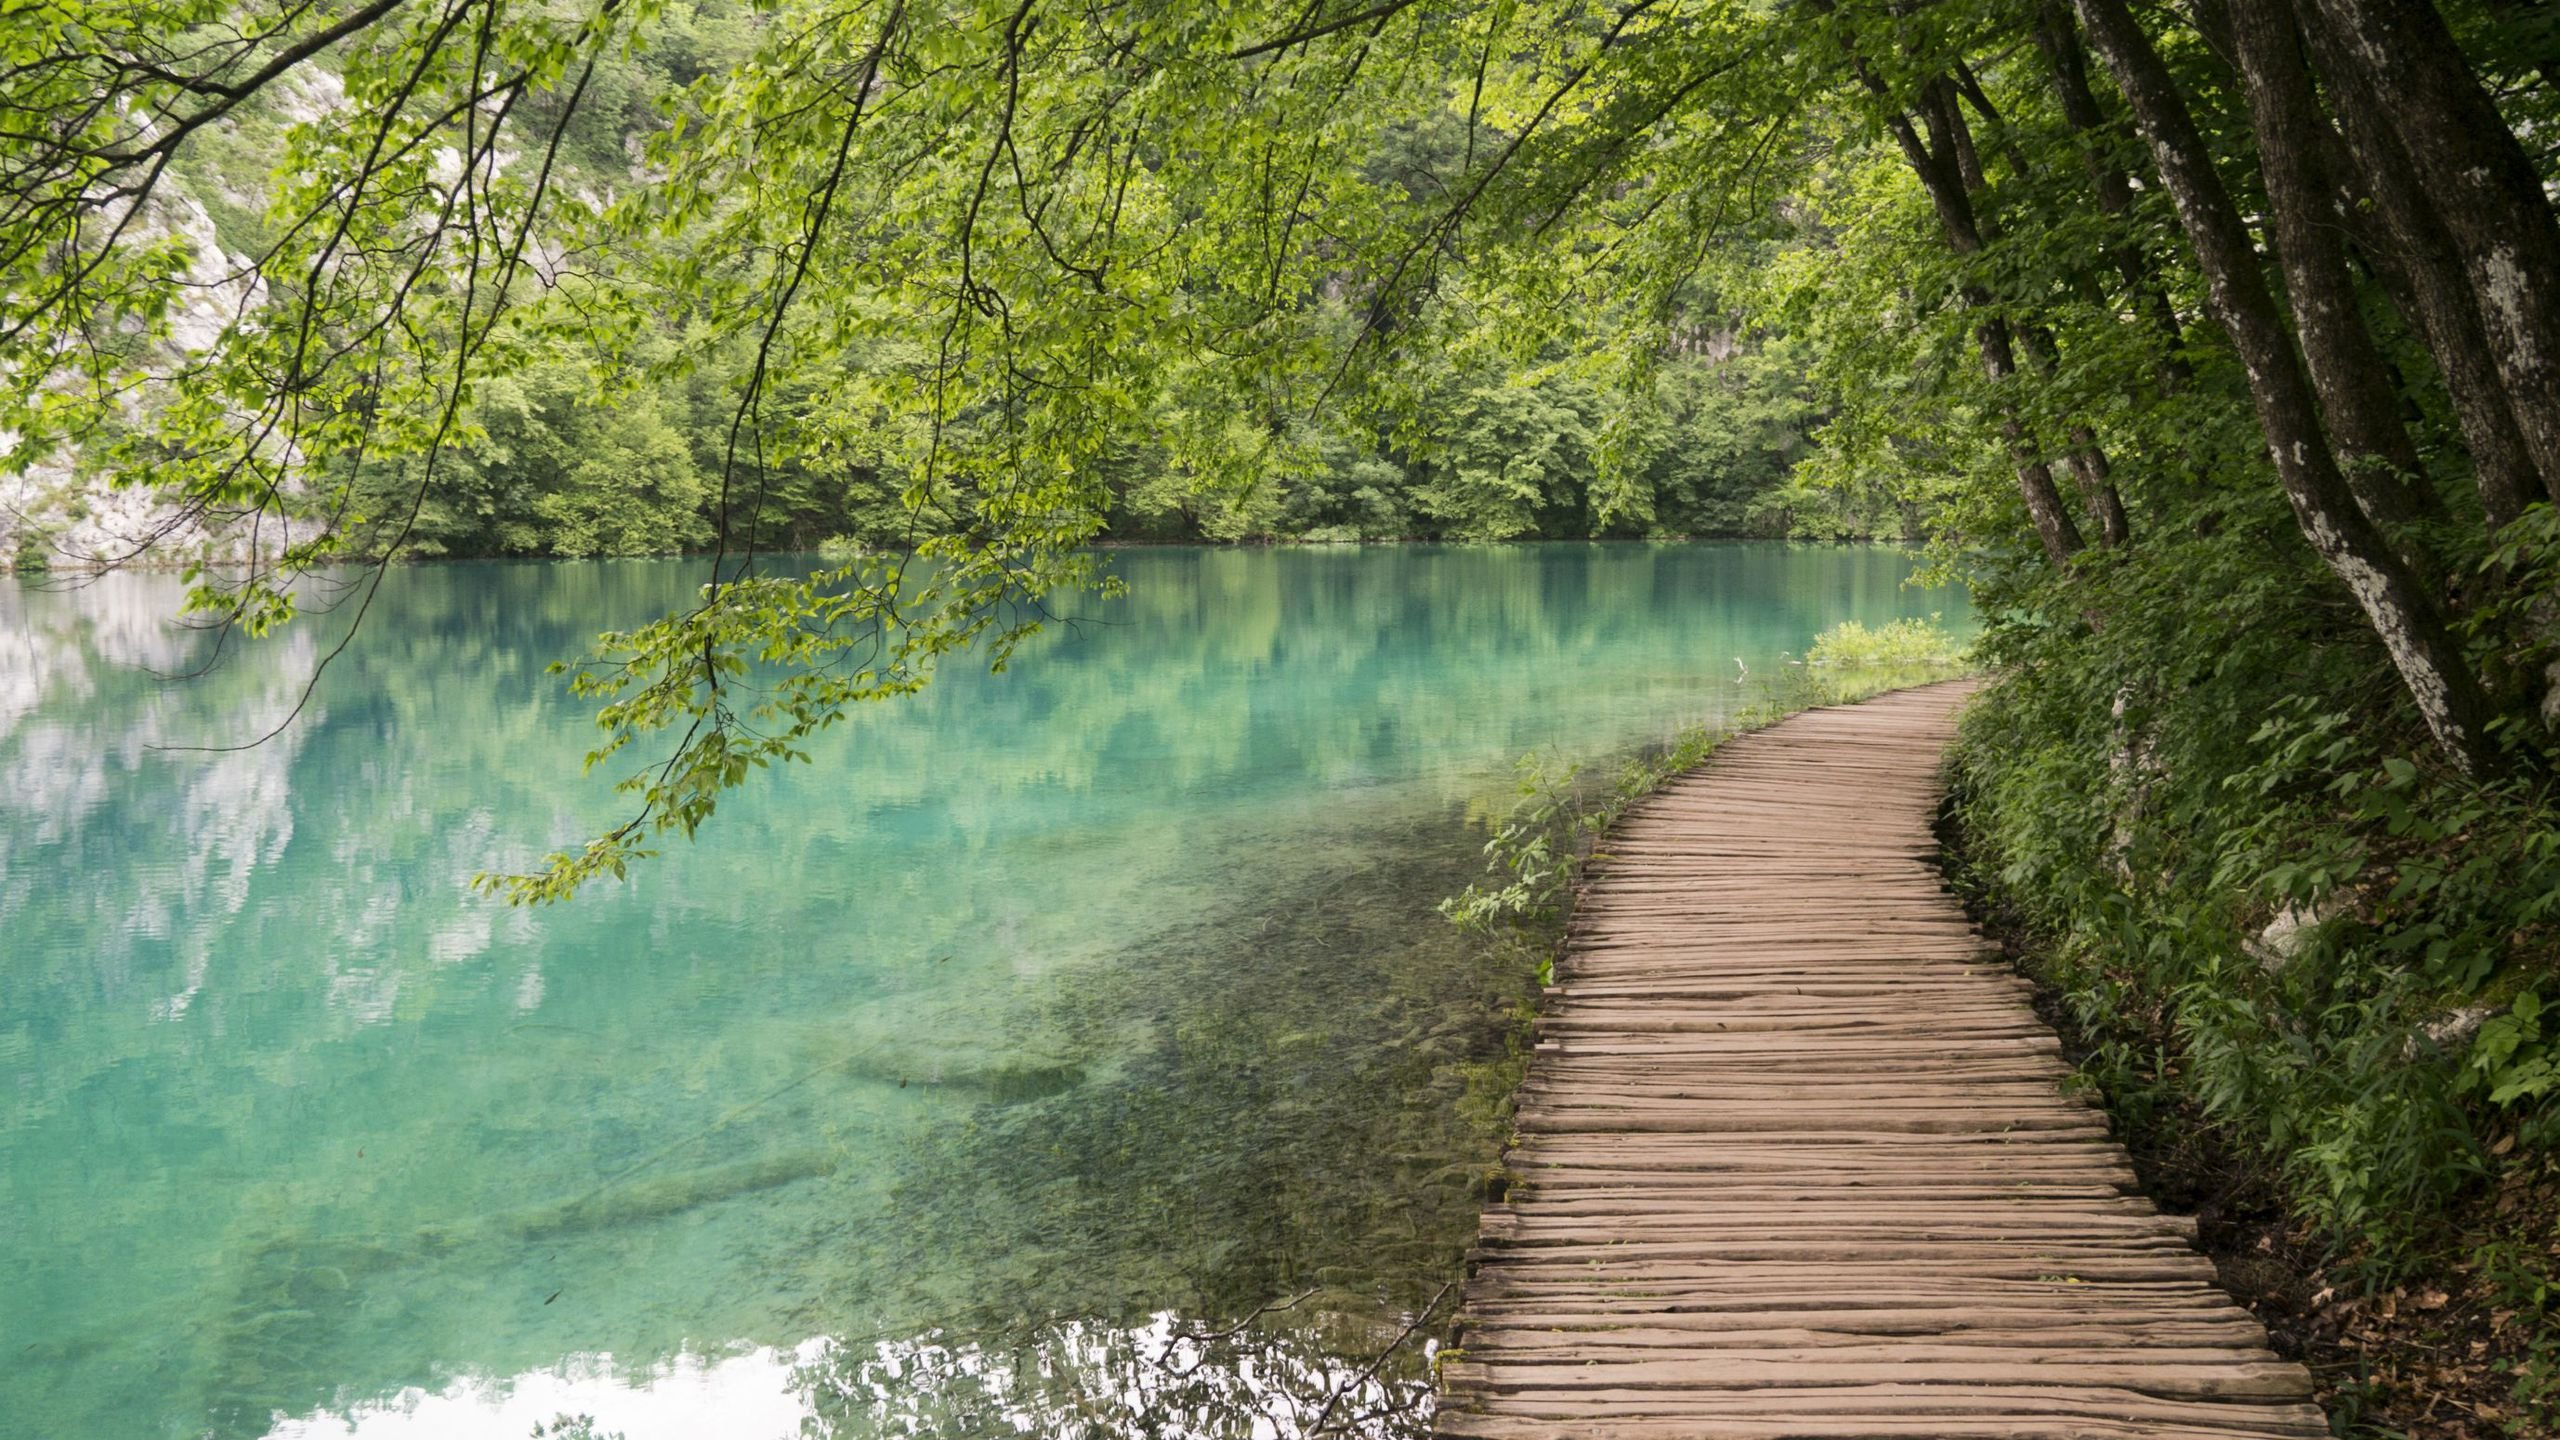 Wooden Path by the Lake at Plitvice Lakes National Park Croatia wallpaper